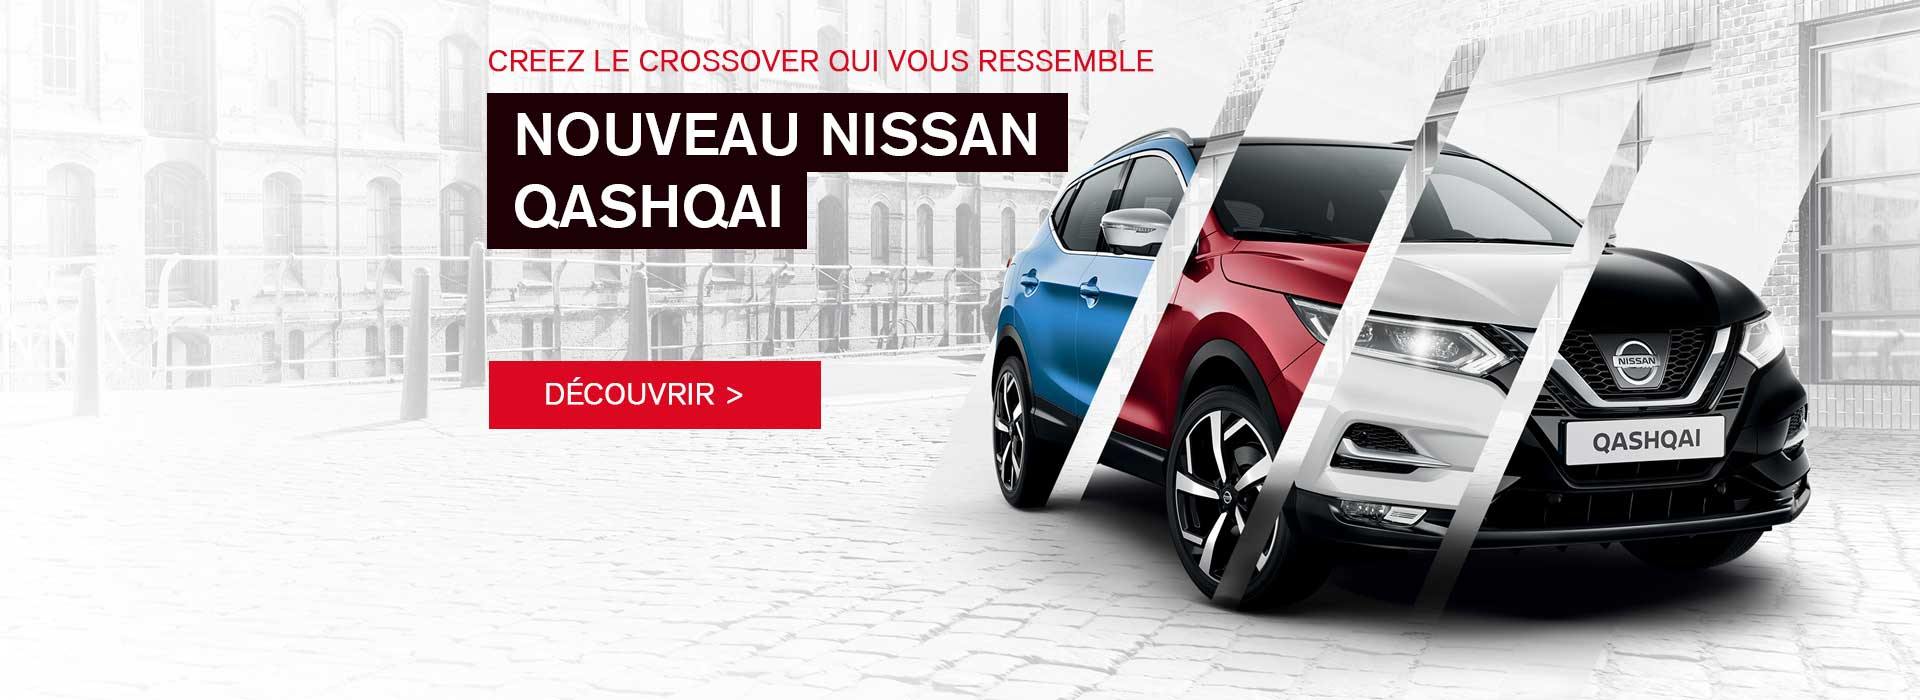 nissan besancon vente voiture neuve vehicule occasion. Black Bedroom Furniture Sets. Home Design Ideas